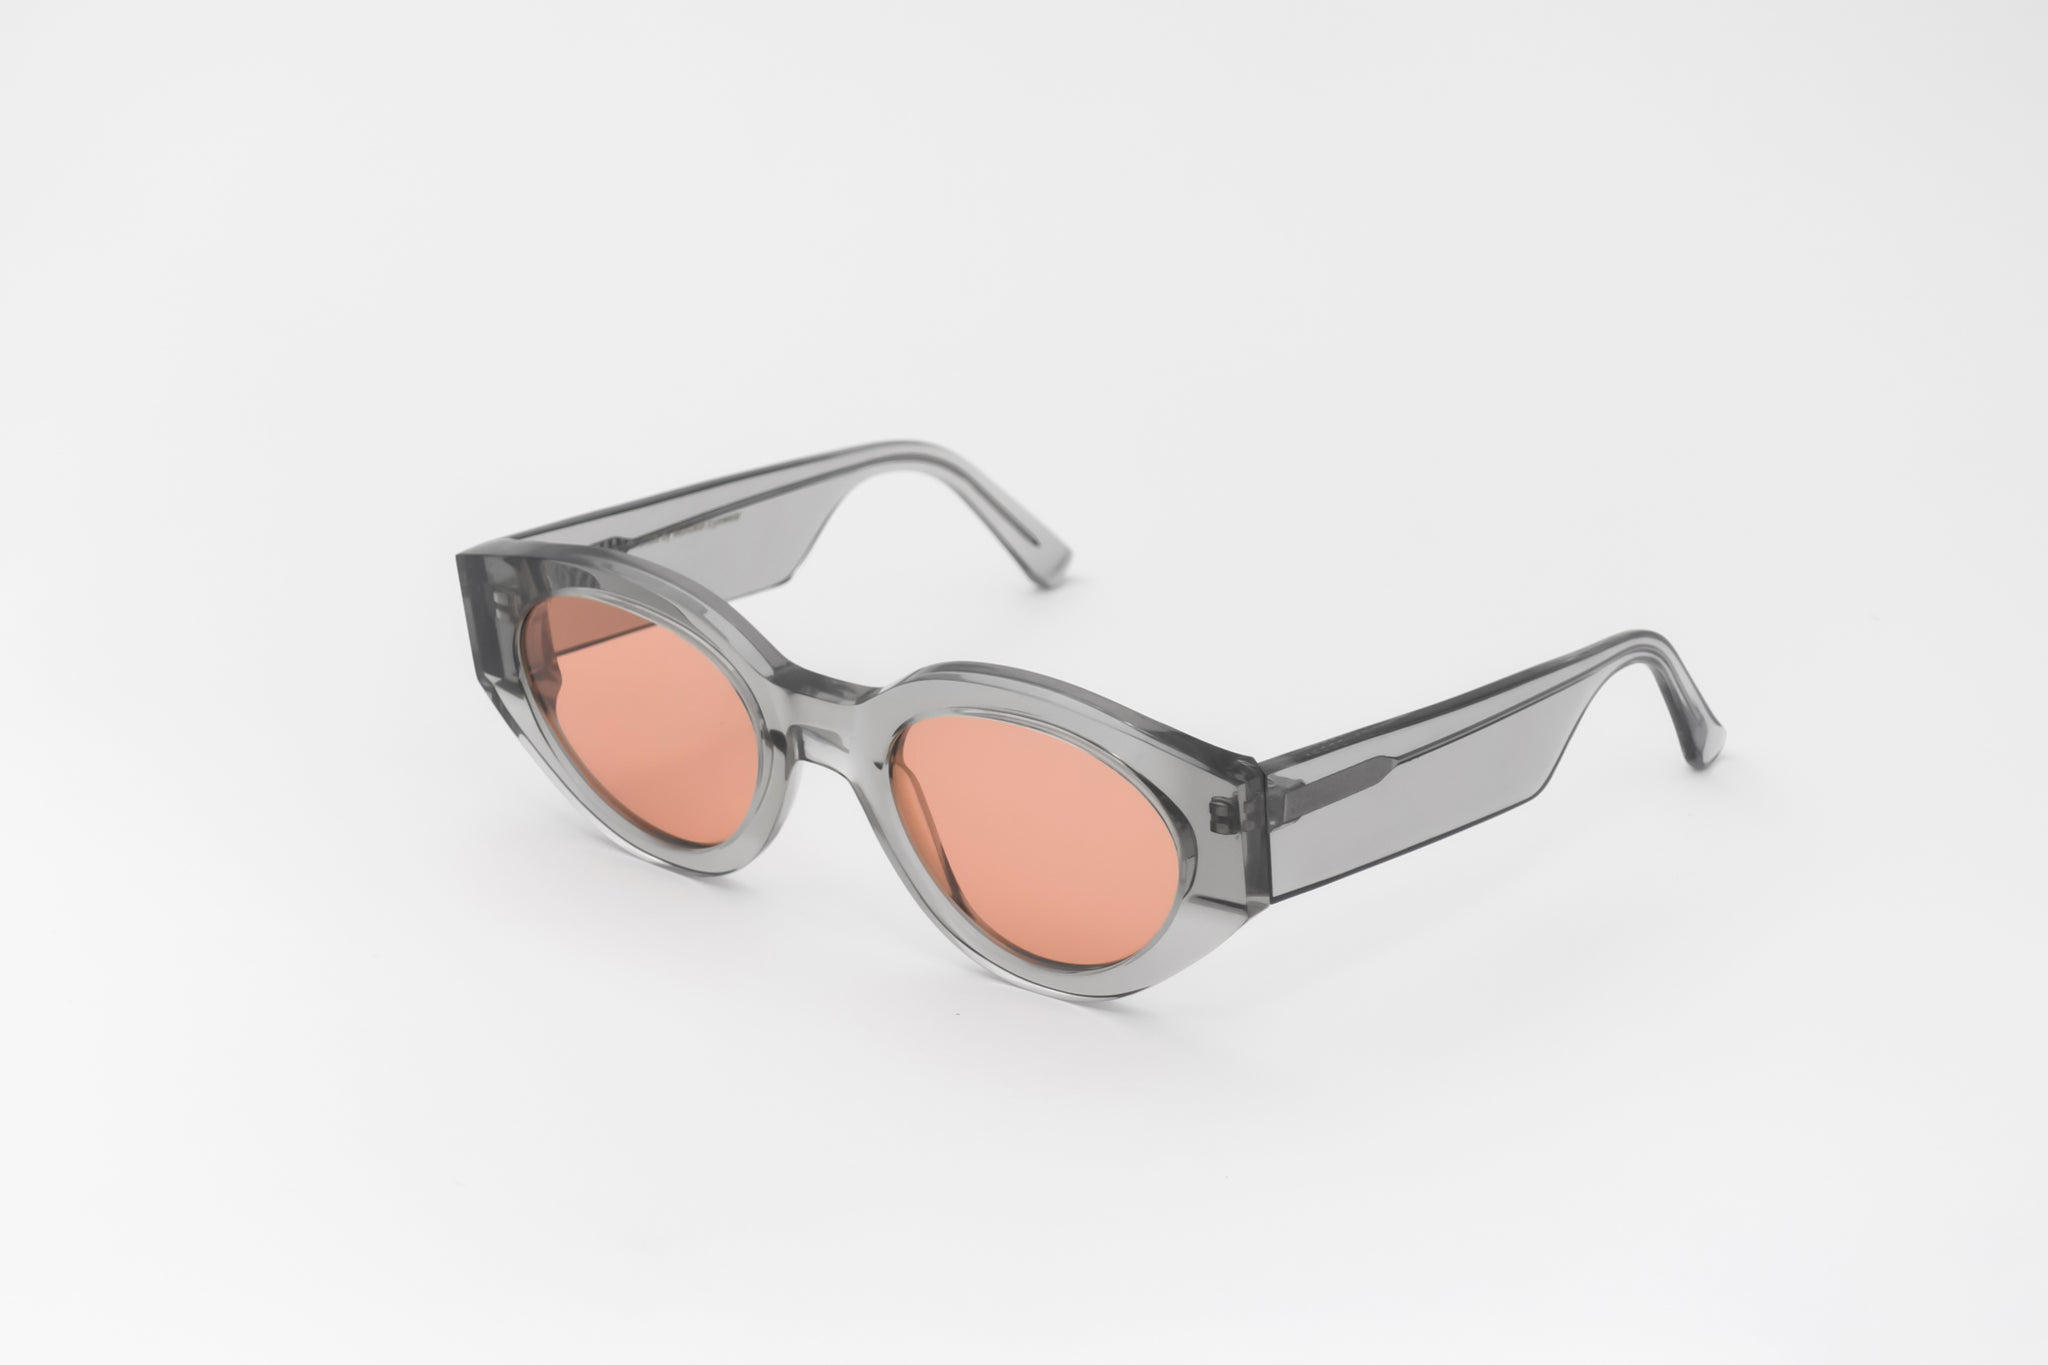 monokel eyewear sunglasses polly grey / orange solid lens